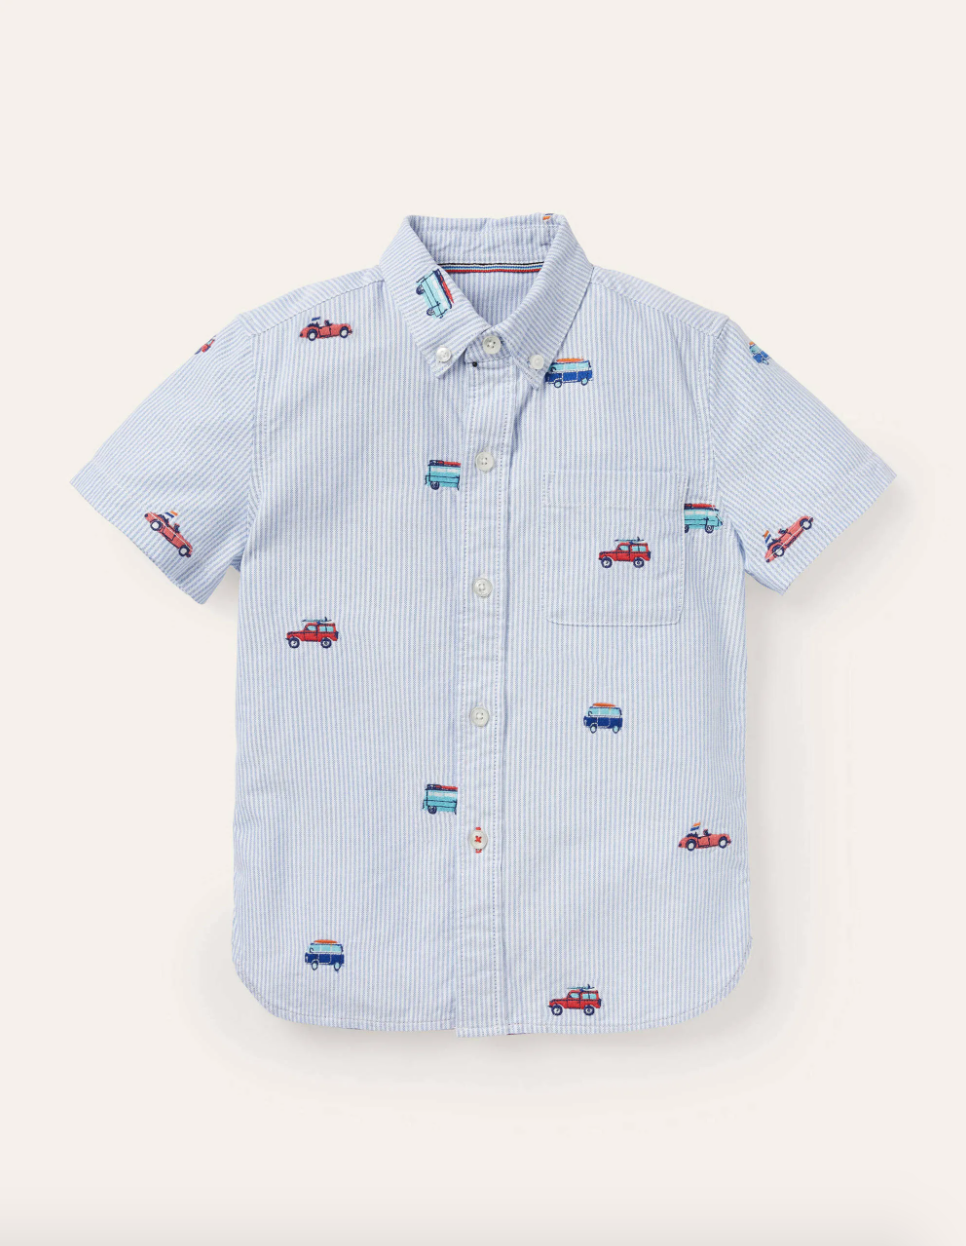 Blue button up shirt with cars and trucks embroidered on it